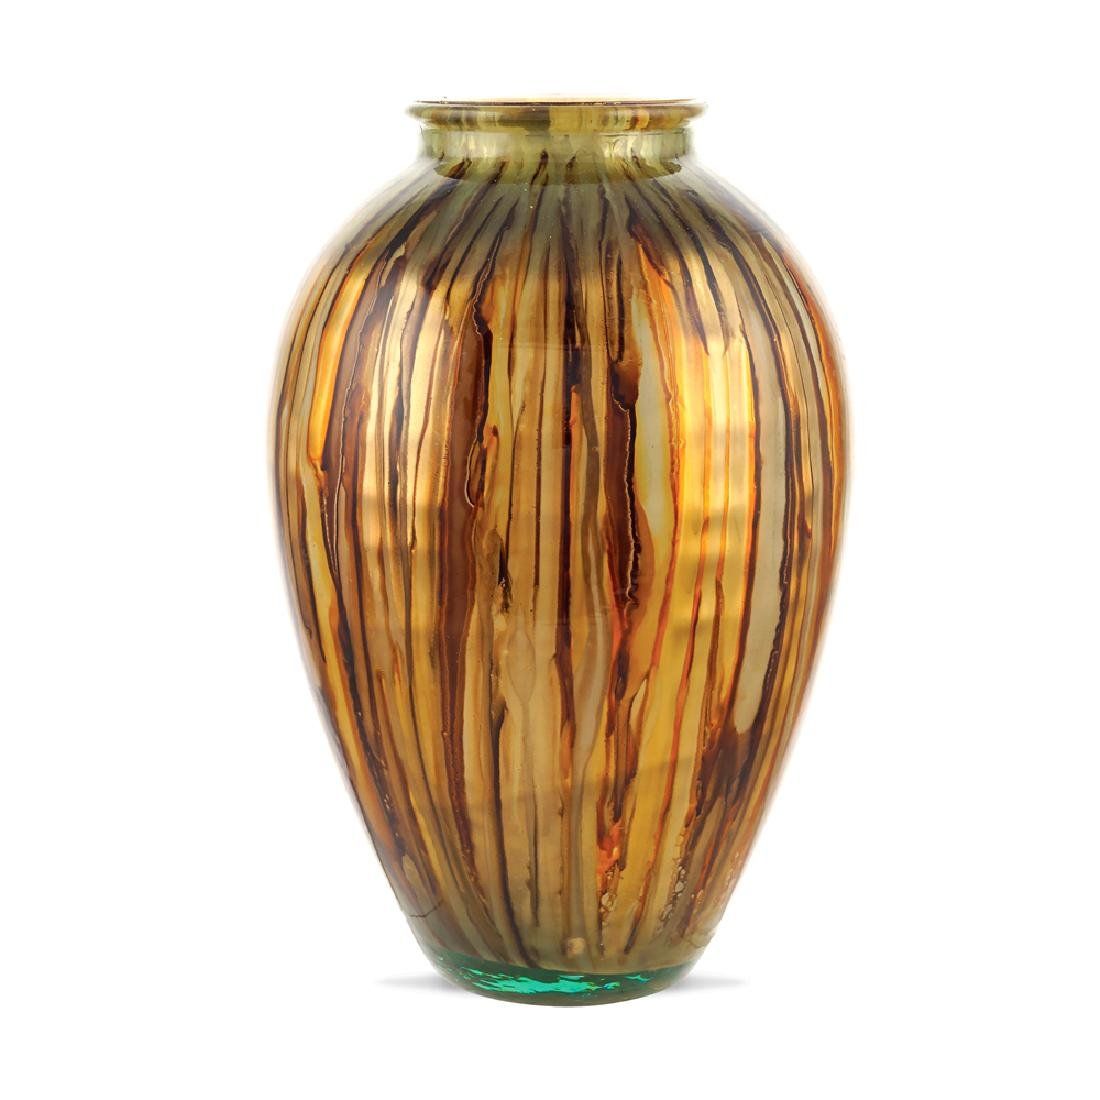 Decorative glass vase 20th century h. 43 cm.